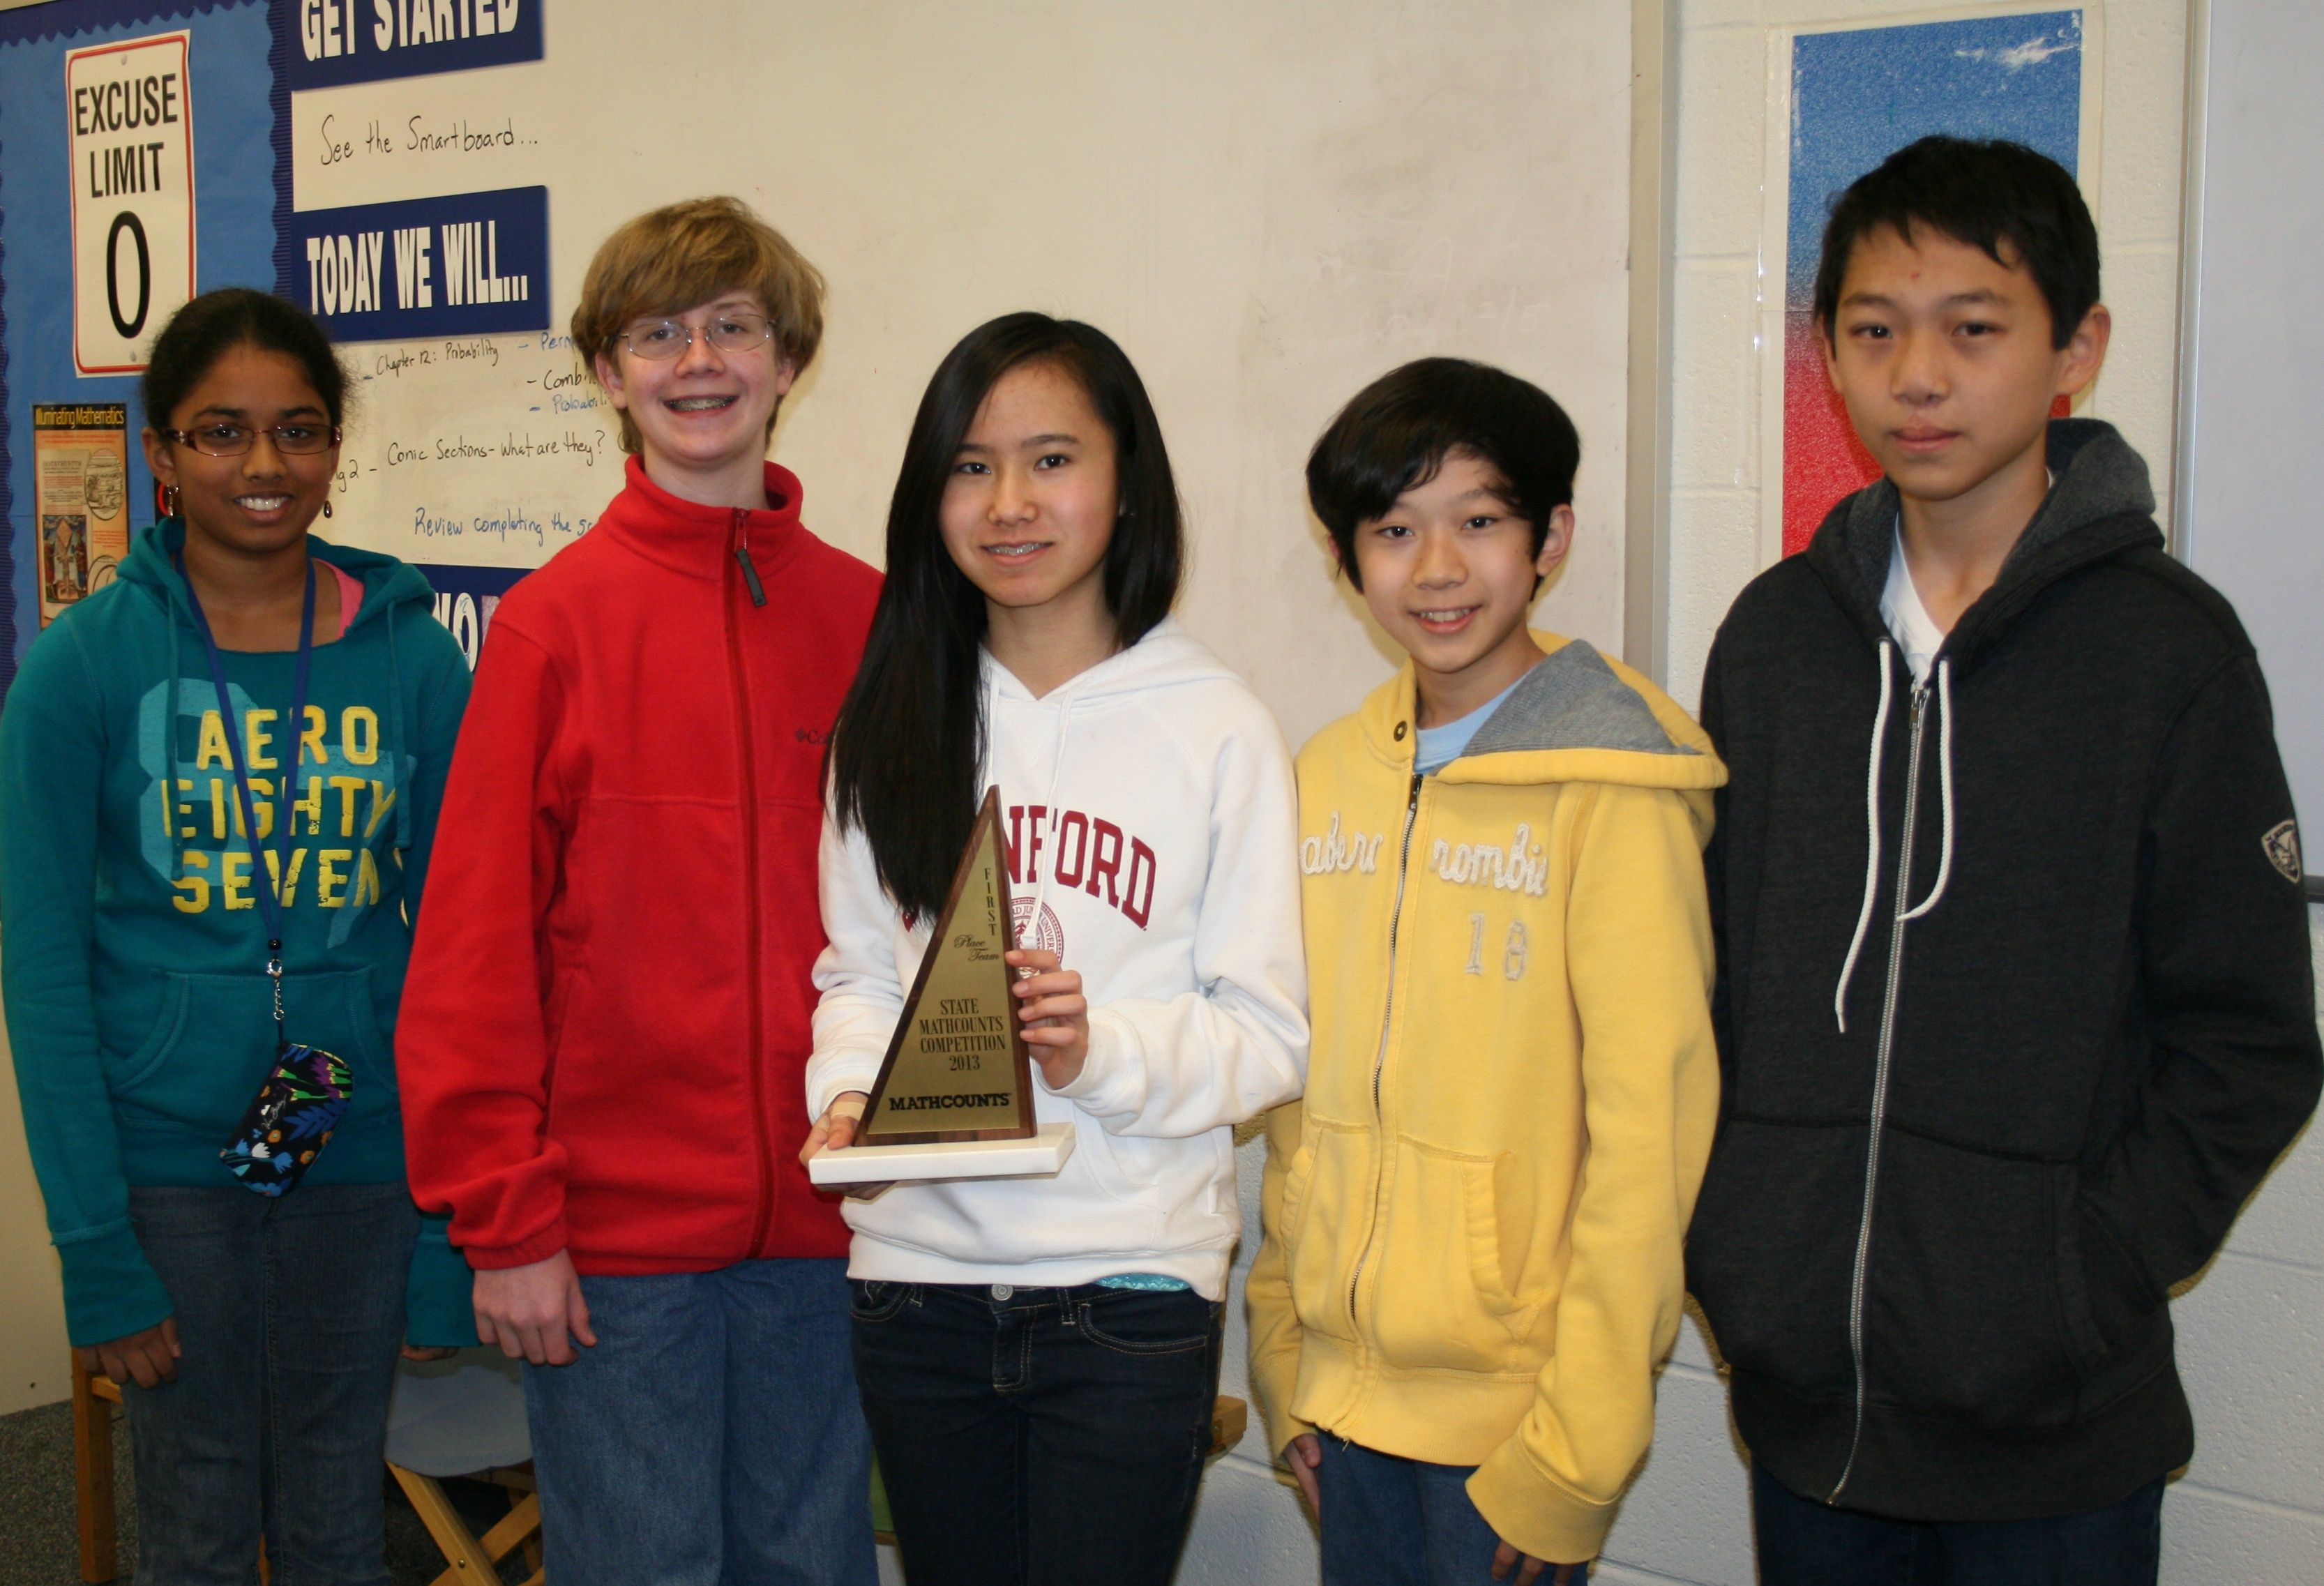 For the fifth straight year Dent Middle Schools MATHCOUNTS team – Mathcounts Worksheets